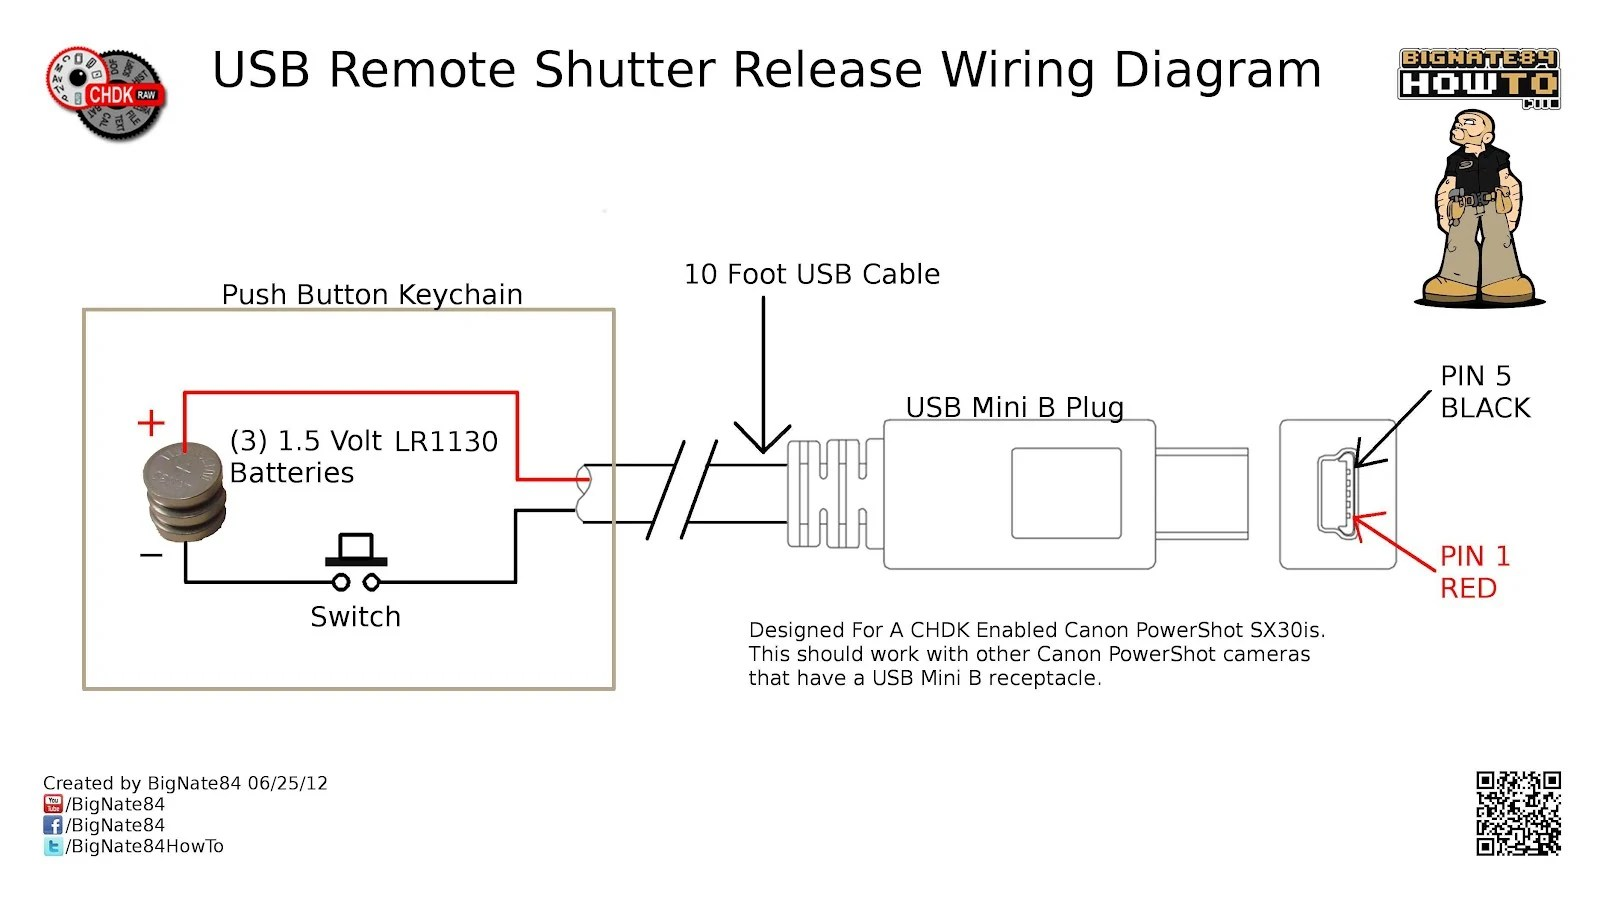 Image  0001 USB Remote Shutter Wiring Diagram 1jpeg